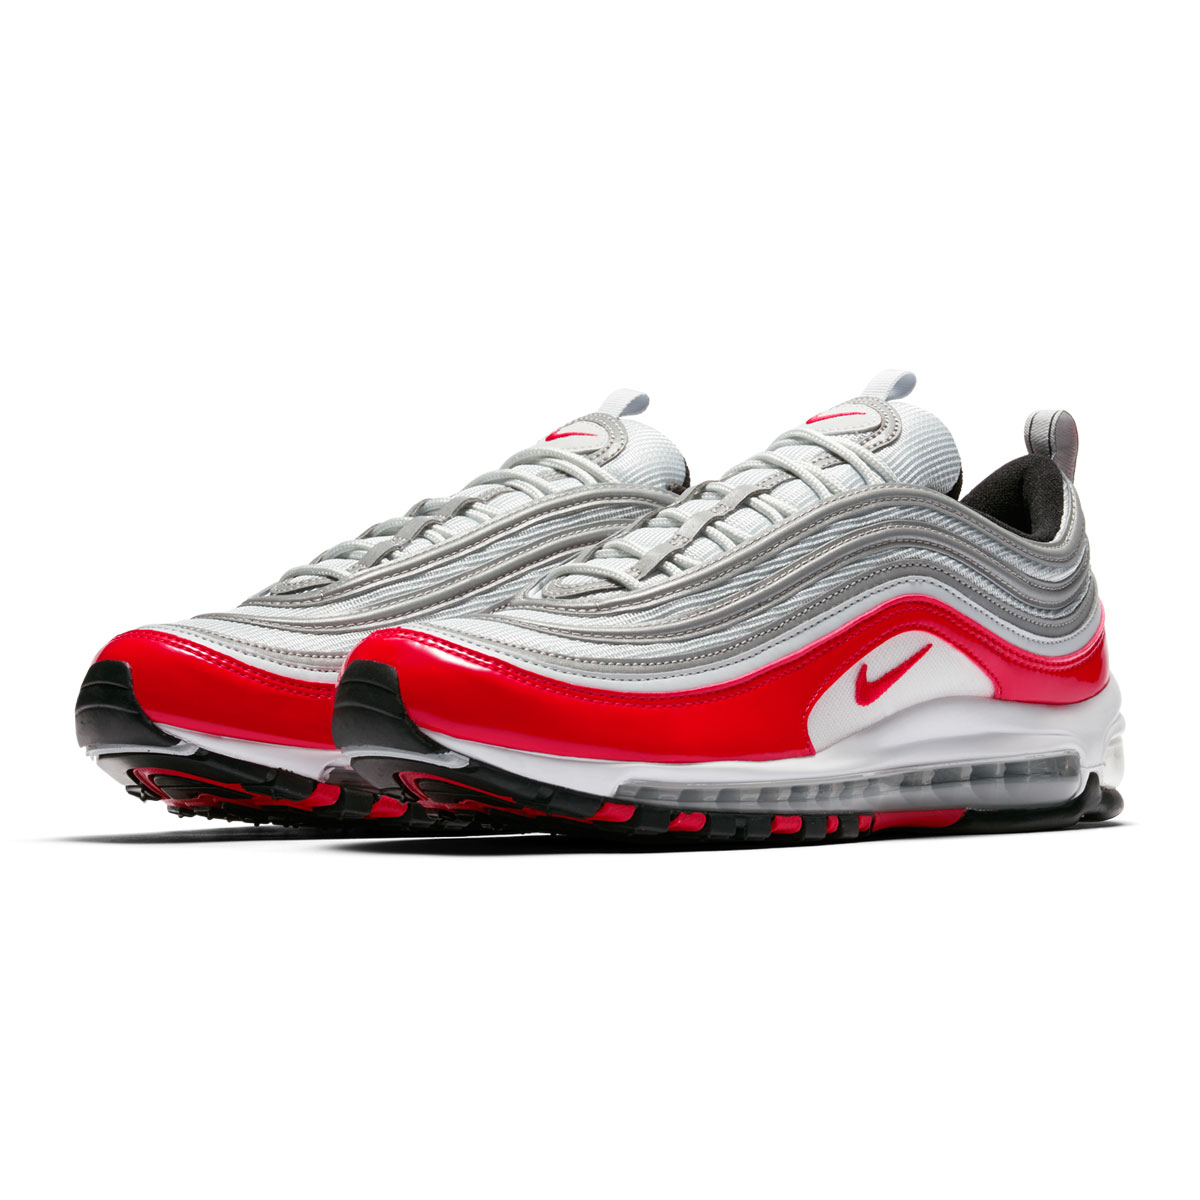 cdc8e6cbb52a The 20th anniversary memory model Kie Ney AMAX 97 men s shoes succeed to  the line such as the wave